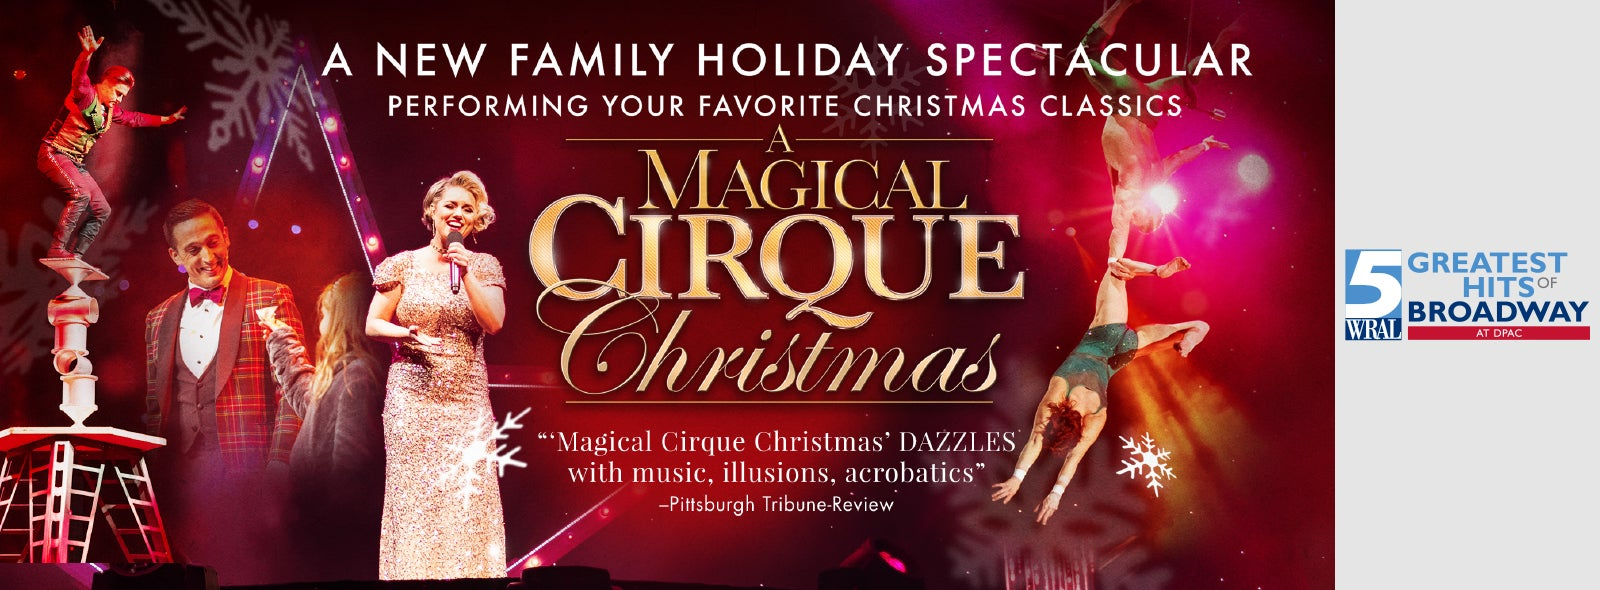 A Magical Cirque Christmas 1600x590